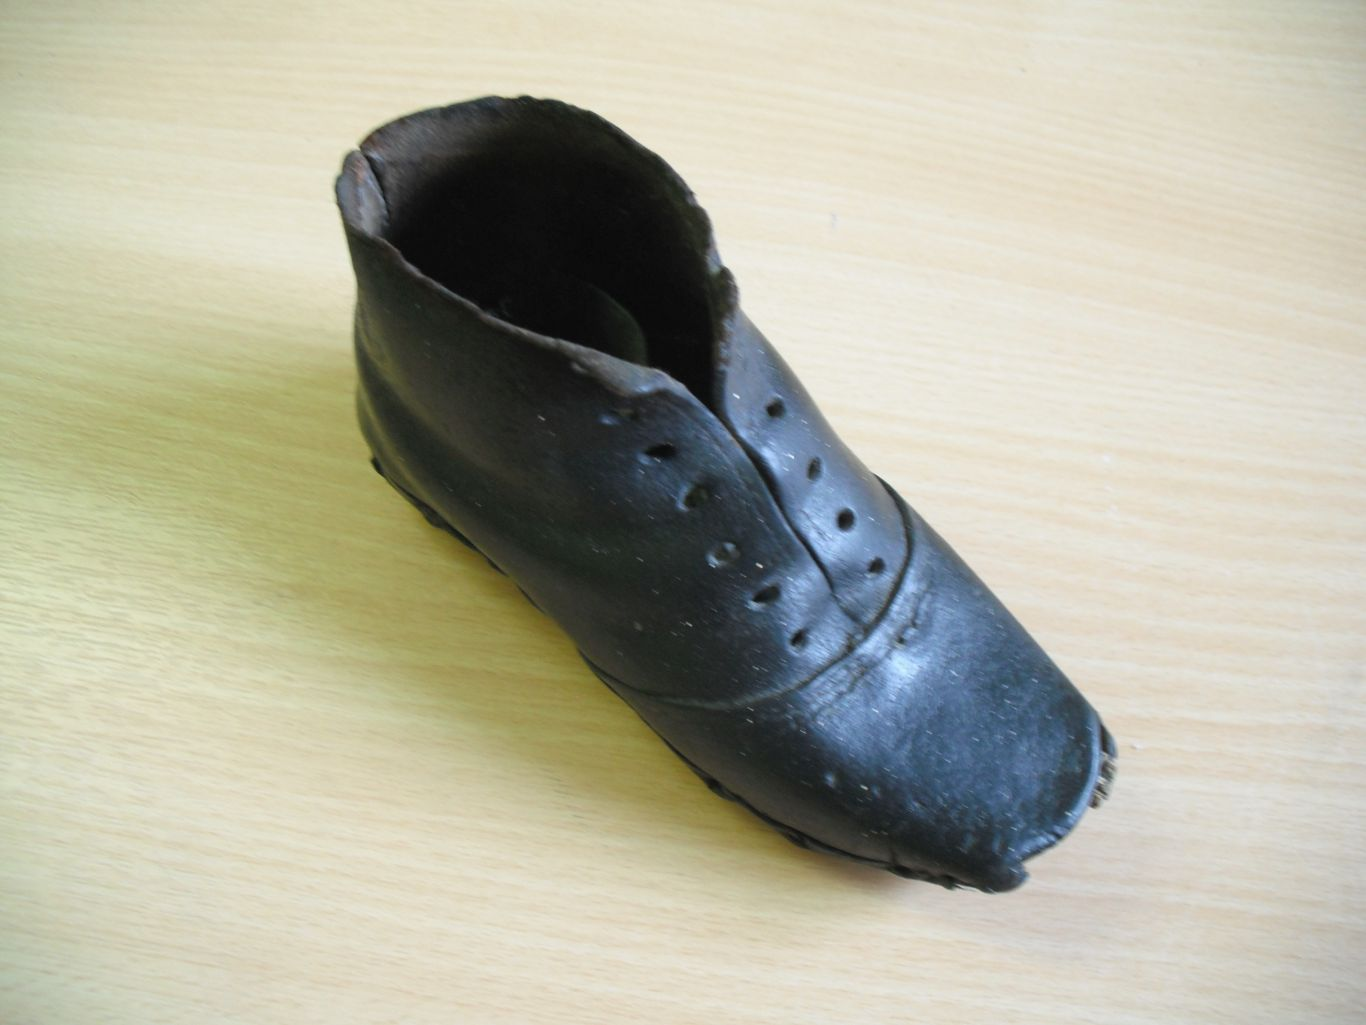 Figure 1. An 18th/19th-century child's shoe found in the chimneybreast of a house in Ilkley, Yorkshire. Photograph by C. Houlbrook, April 2011